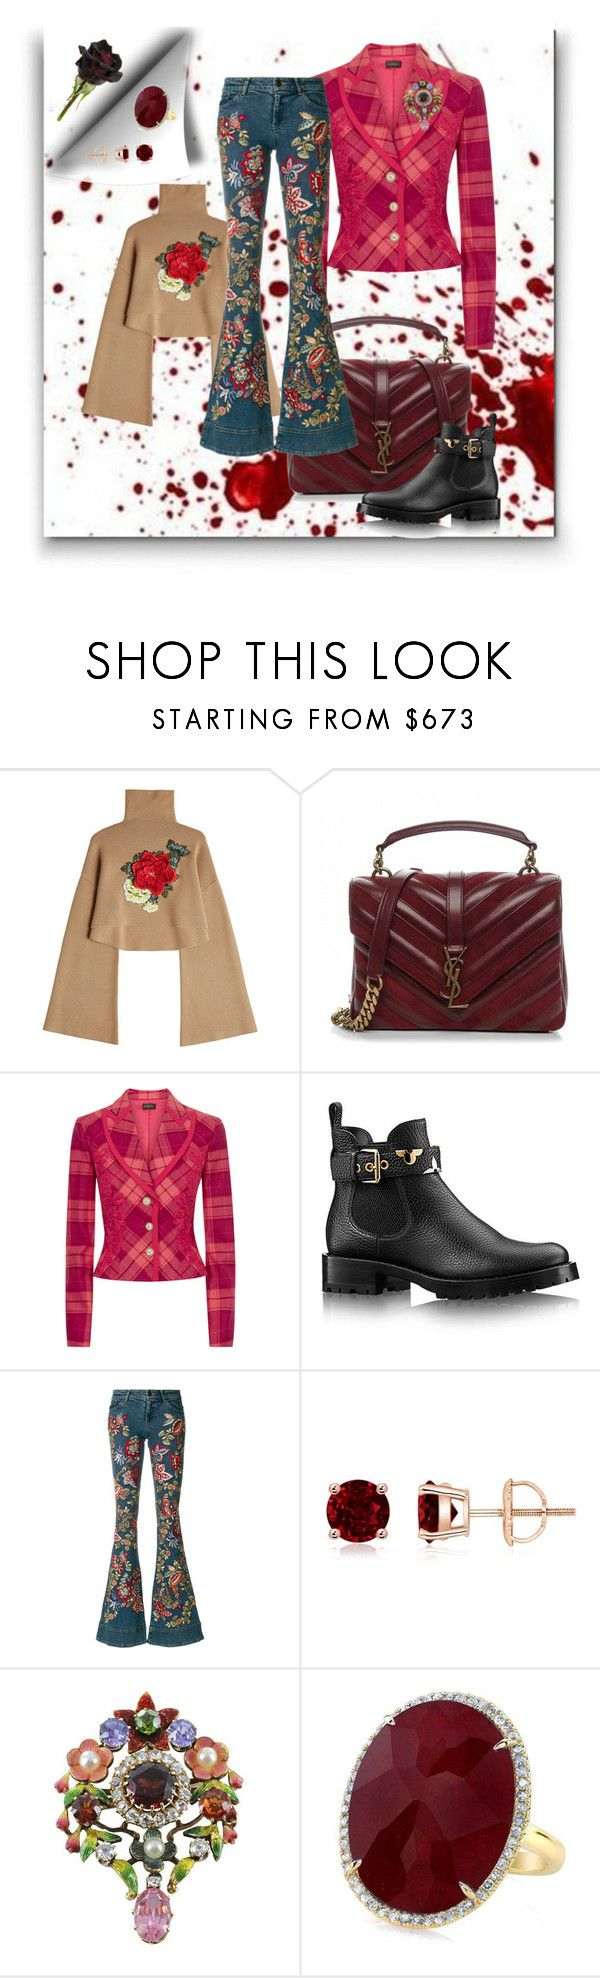 """crazy her"" by georgine-d ❤ liked on Polyvore featuring William Fan, Yves Saint Laurent, La Perla and Alice + Olivia"